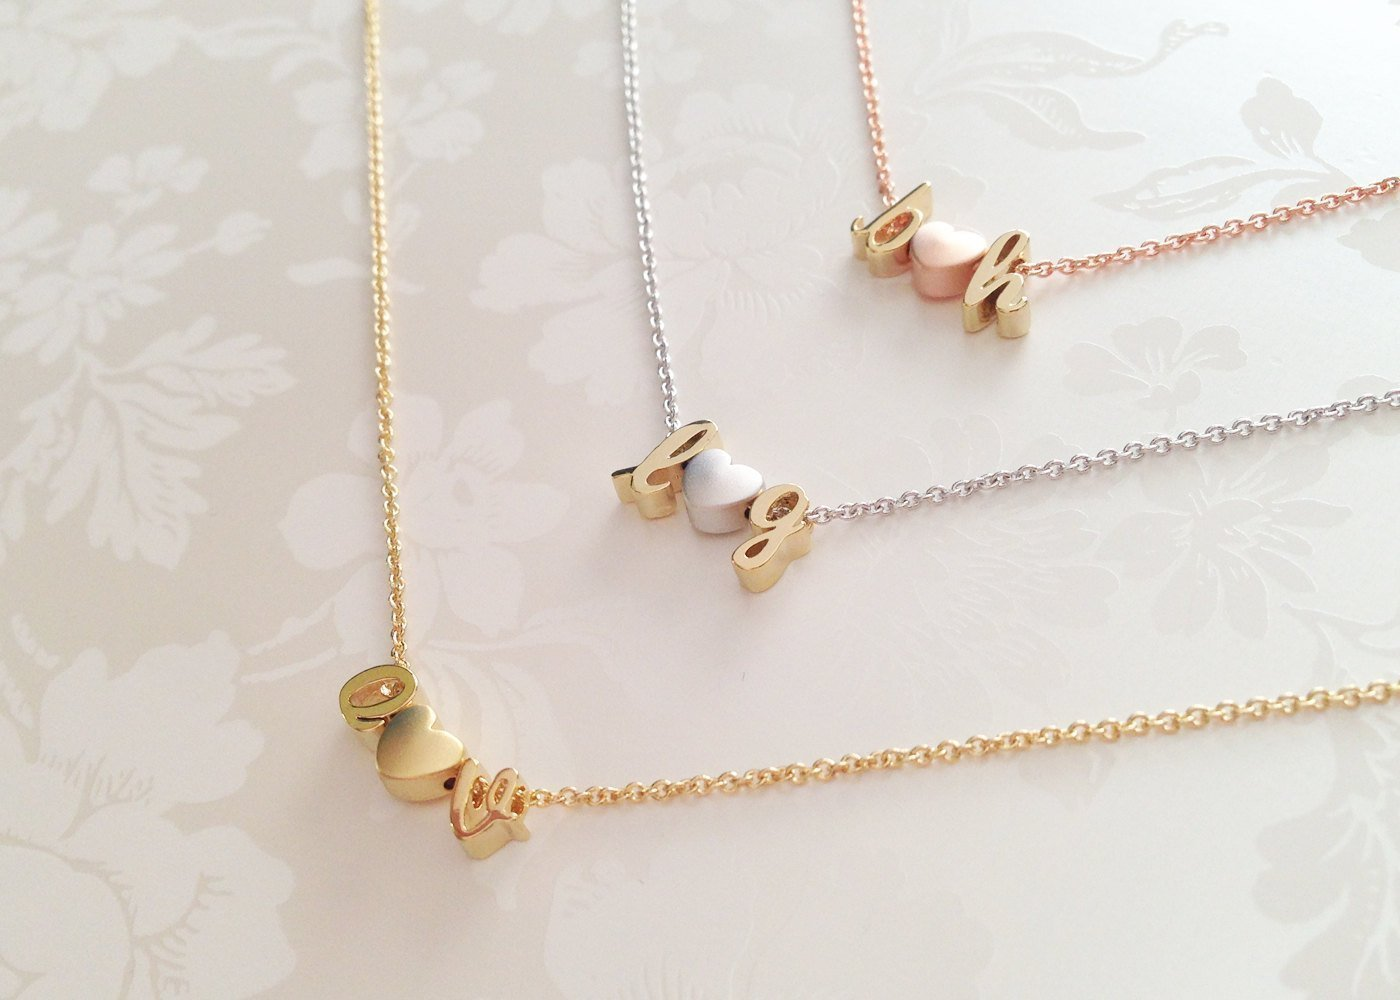 necklace pendant com delicate gold amazon jewelry rose chain heart dp minimalist with